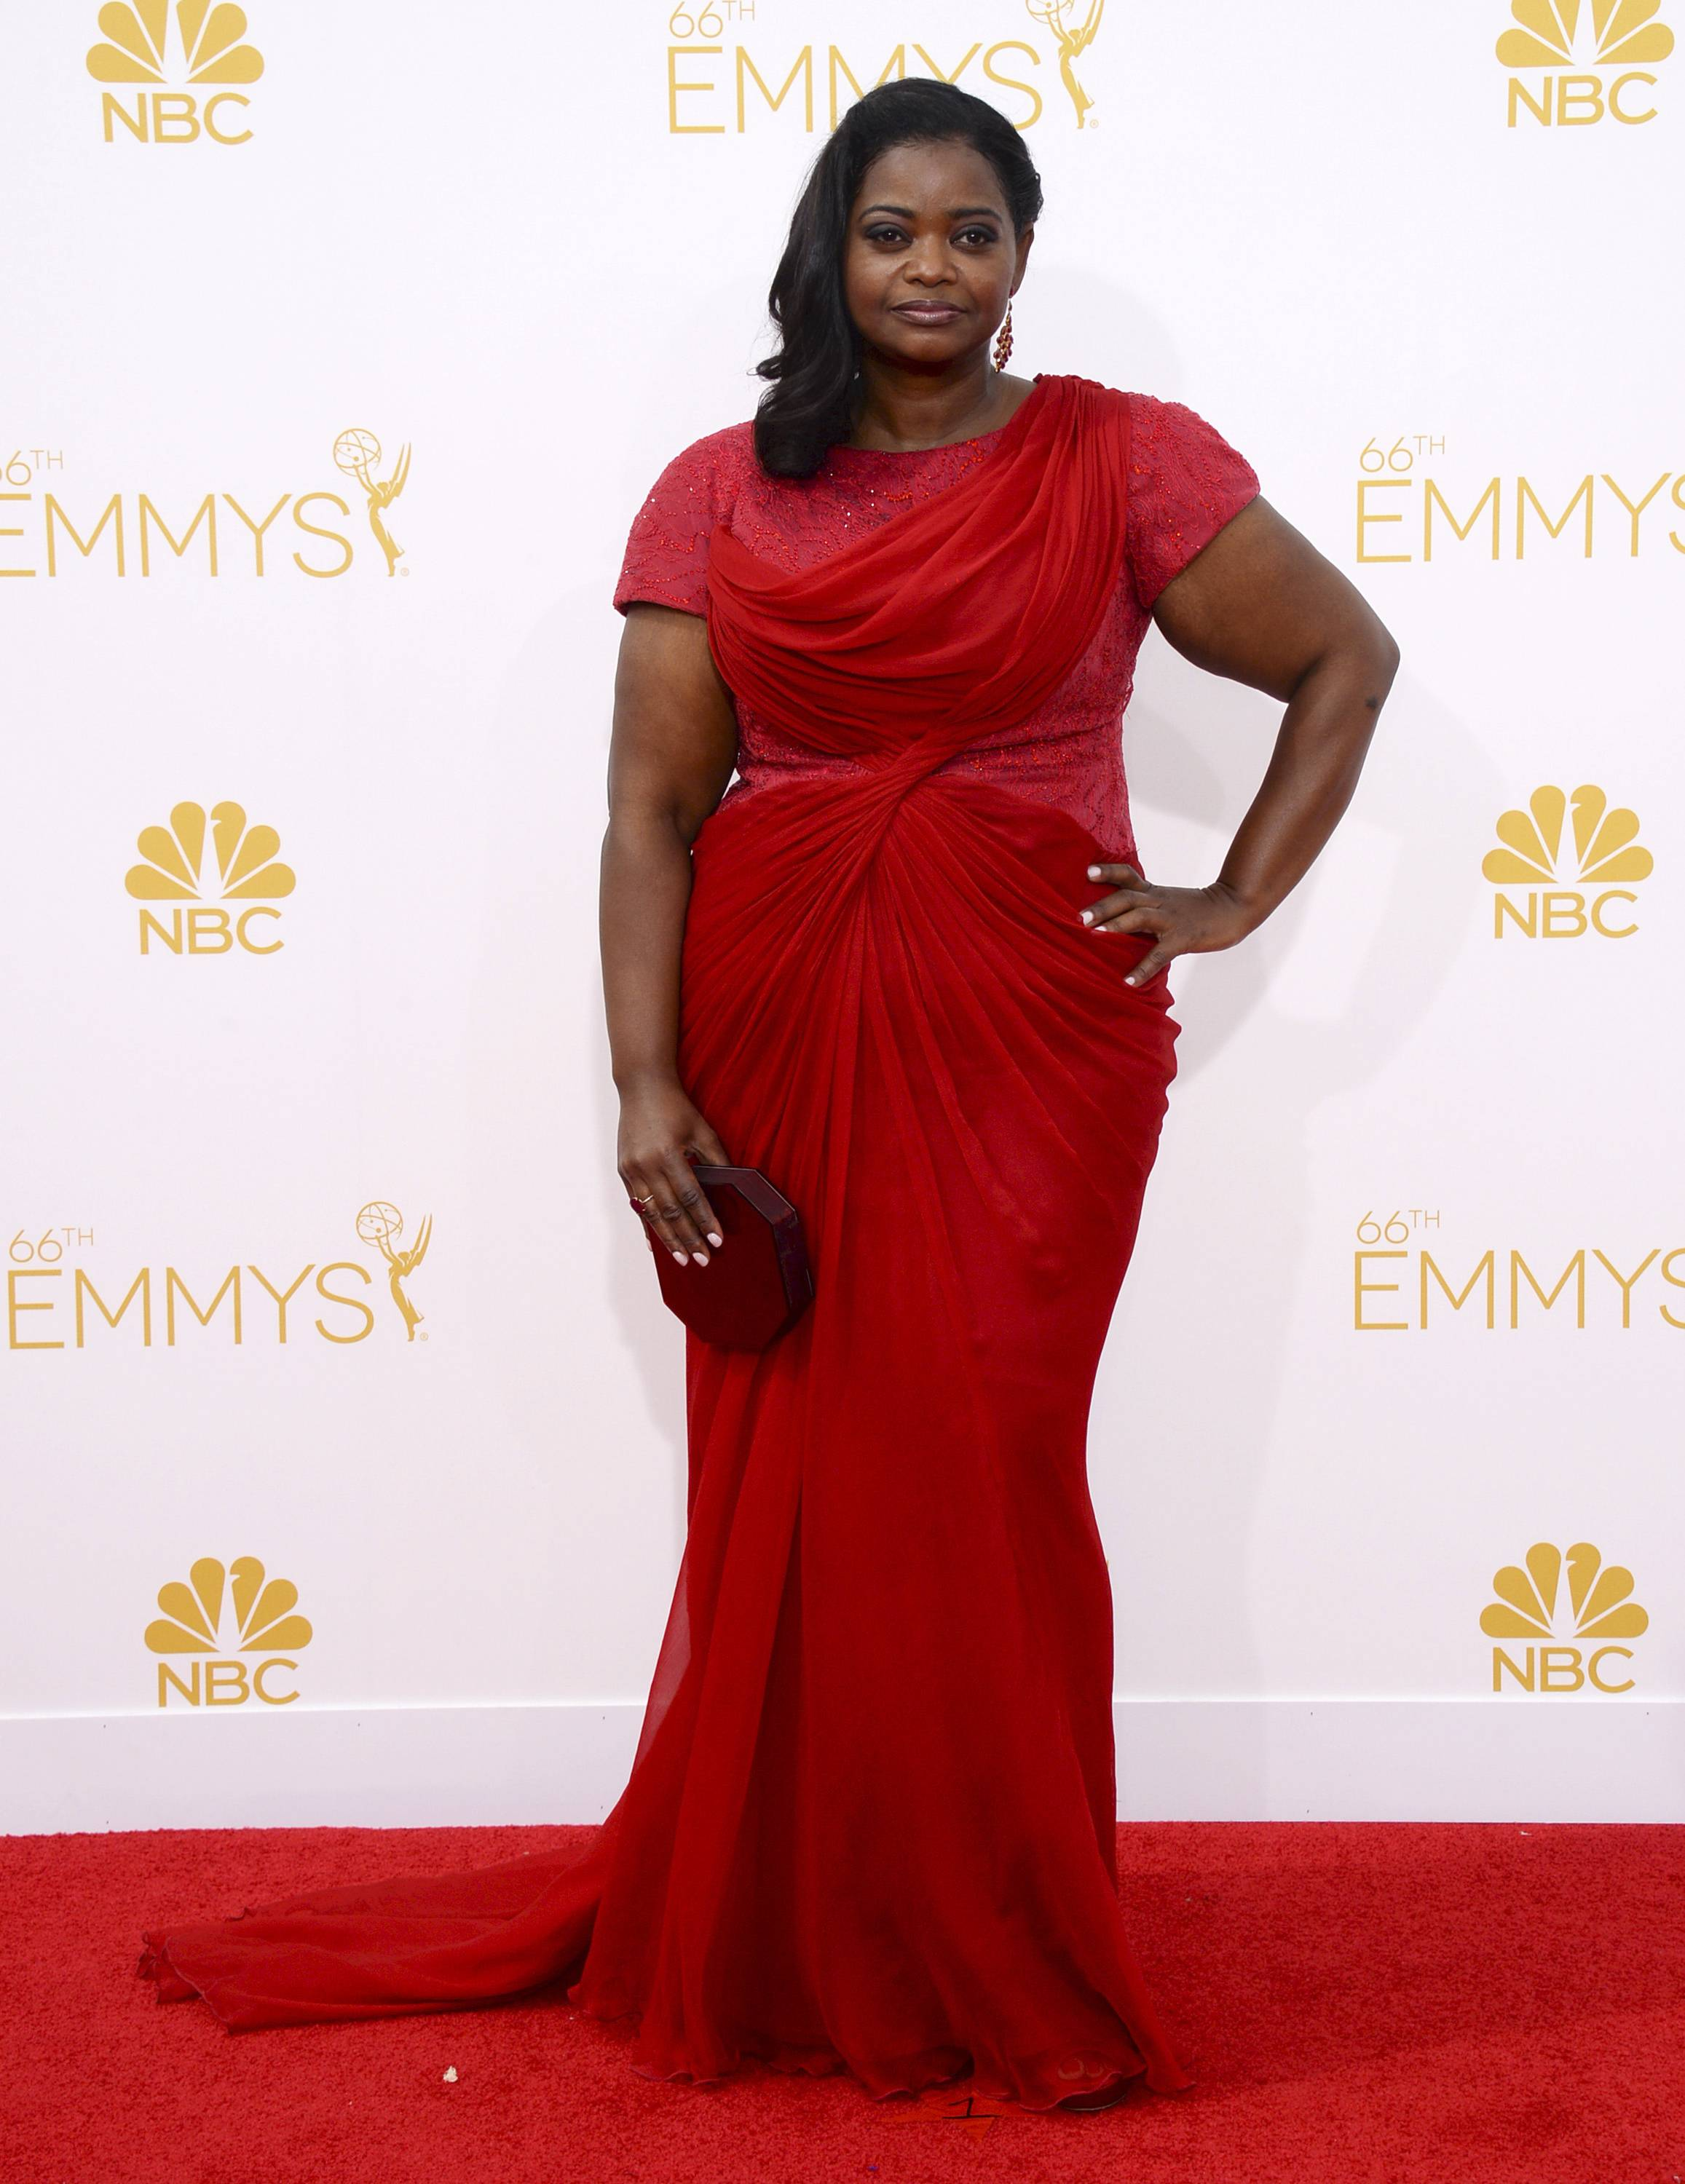 Octavia Spencer arrives at the 66th Annual Primetime Emmy Awards at the Nokia Theatre.